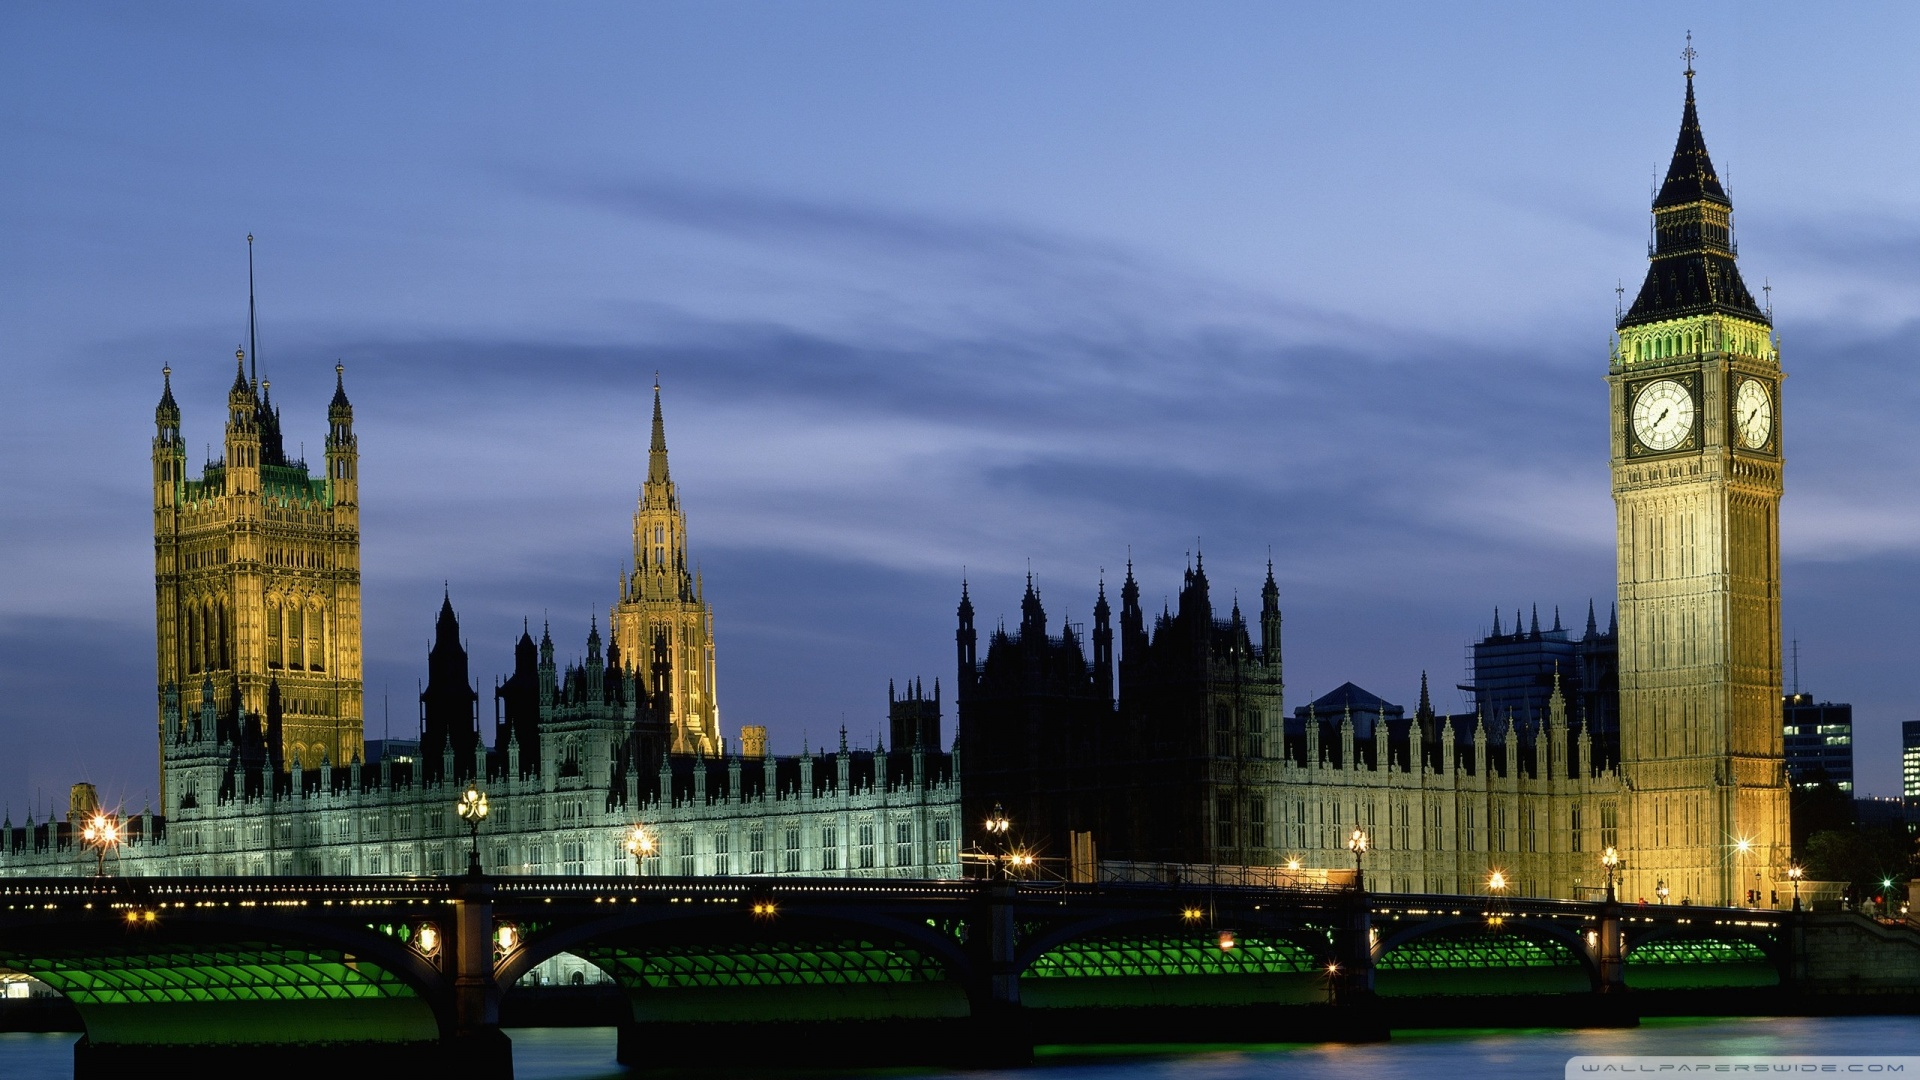 Houses Of Parliament And Big Ben London Uk Europe Wallpaper 1920x1080 1920x1080